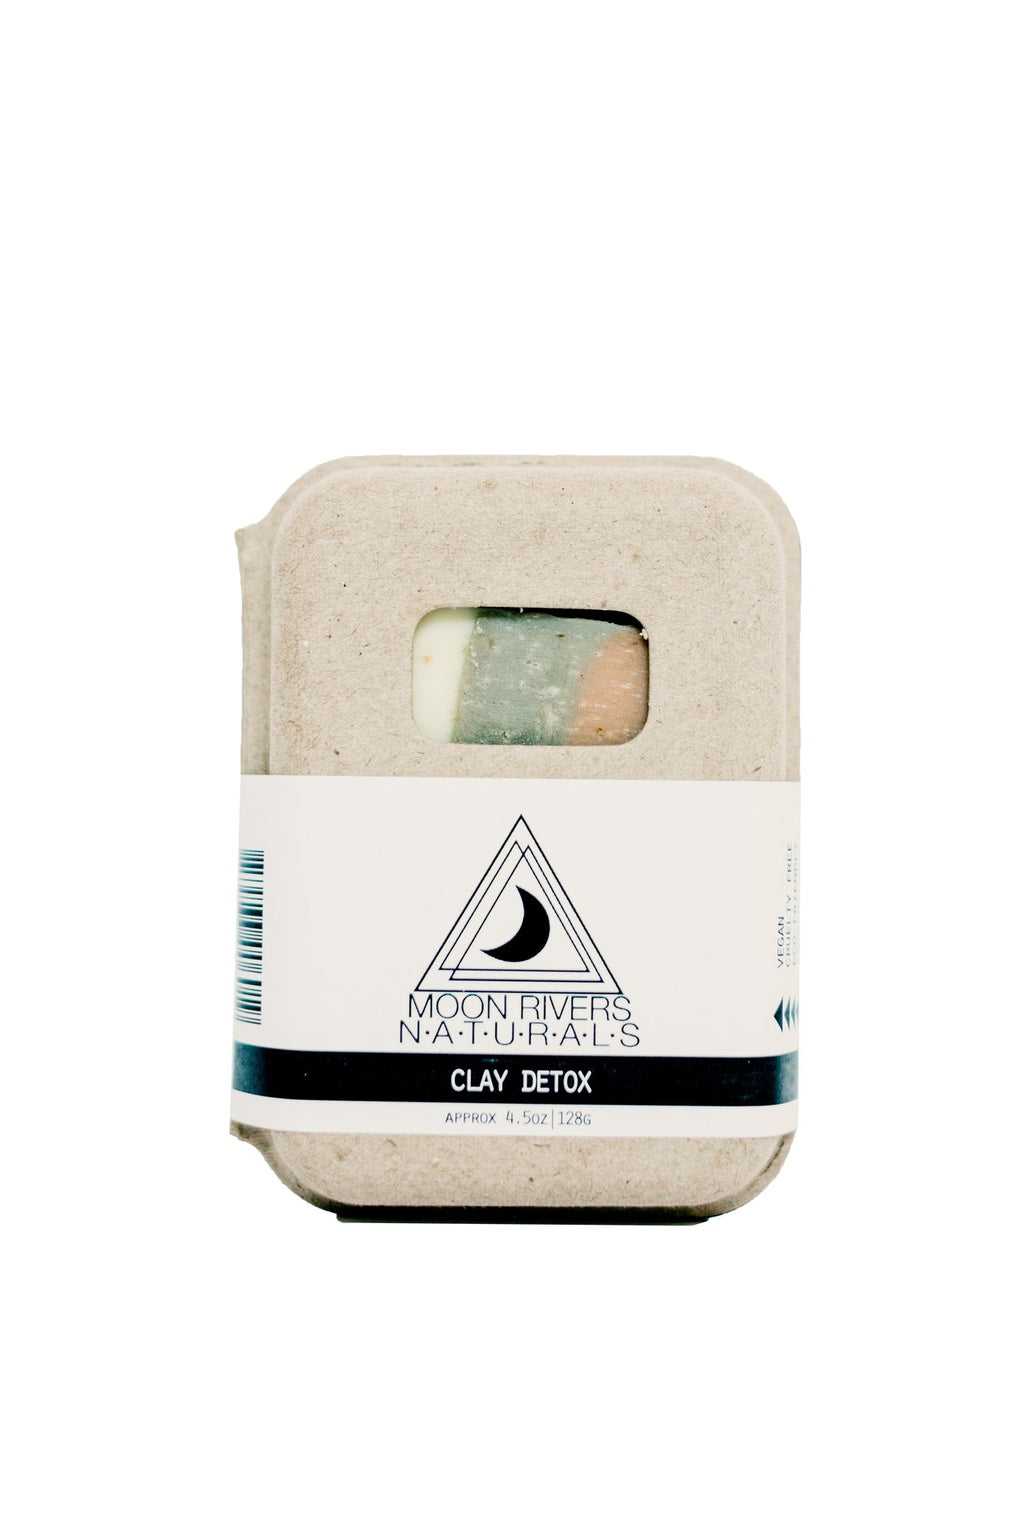 MOON RIVERS NATURALS Clay Detox Soap